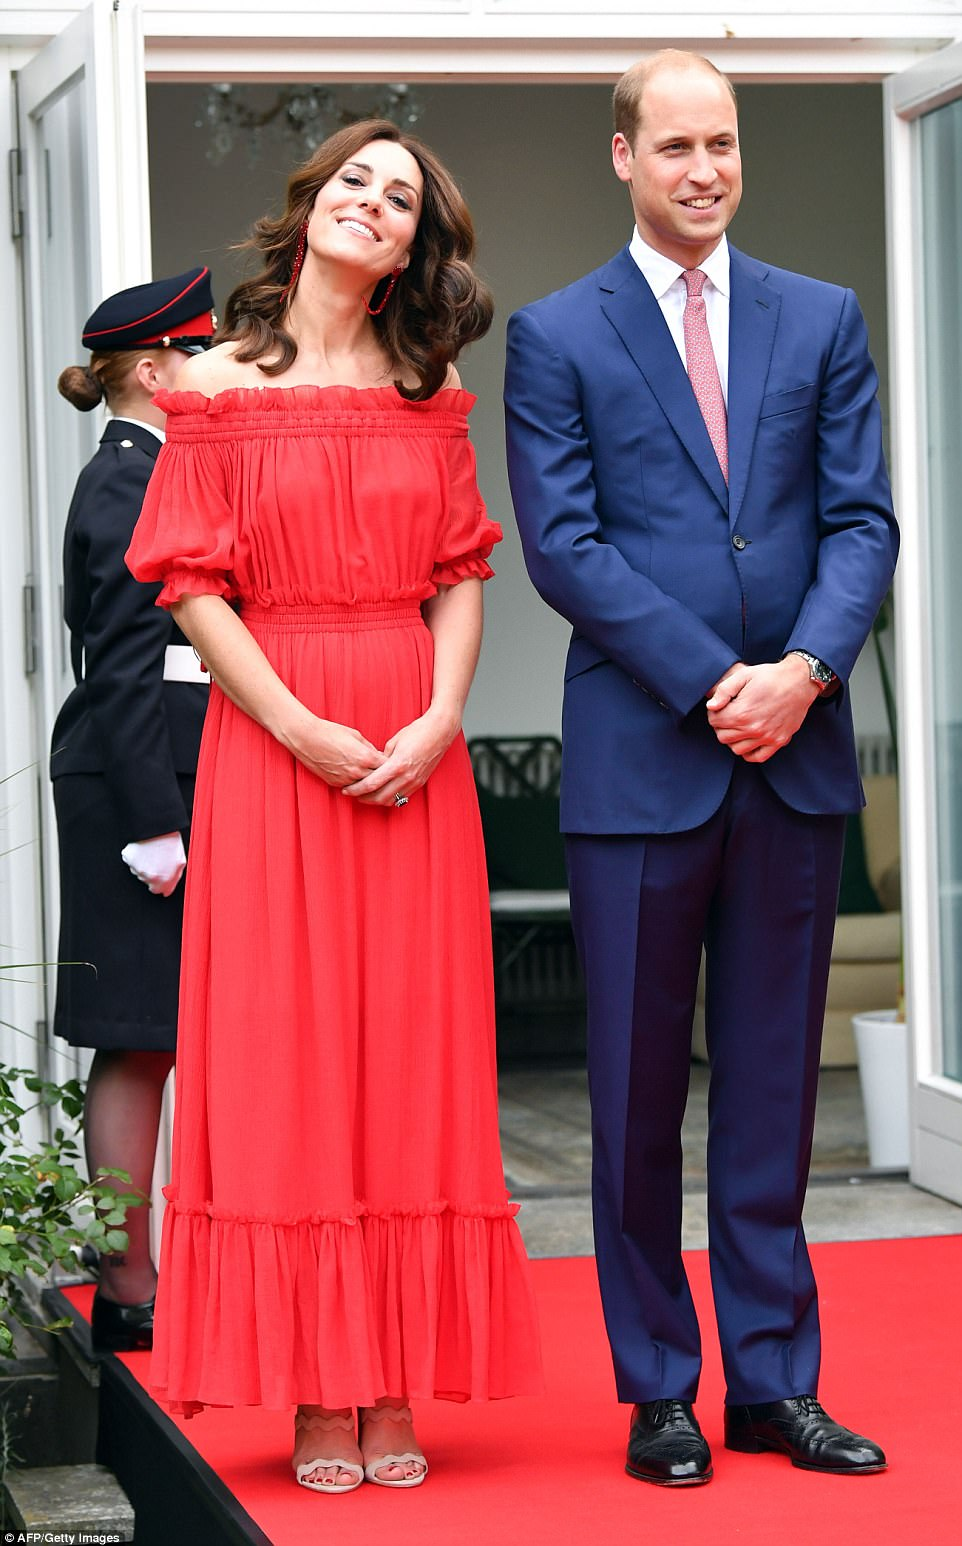 Smiling Kate looked to be in good spirits tonight as Berlin rolled out the red carpet for their VIP visitors. The couple both raised a toast to the Queen - in whose honour the party was thrown - as well as their hosts after giving his speech